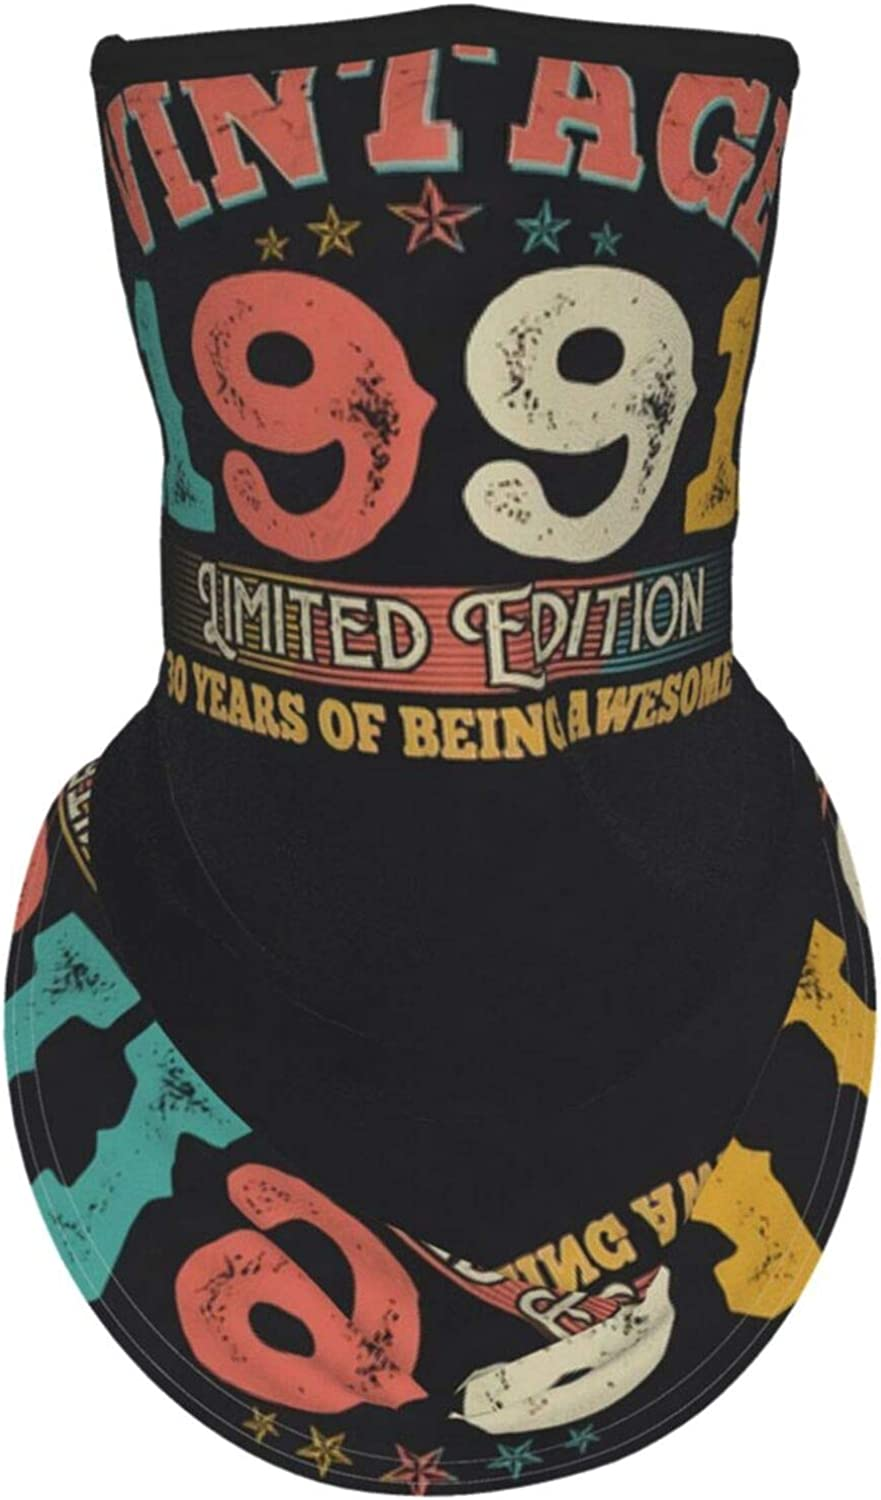 Ear Hangers Face Balaclava 30th Birthday Vintage Limited Edition 1991 Black Protective Cover Wristband Bandanas Neck Gaiter Dust-Proof,Anti-Pungent Gas,Washable